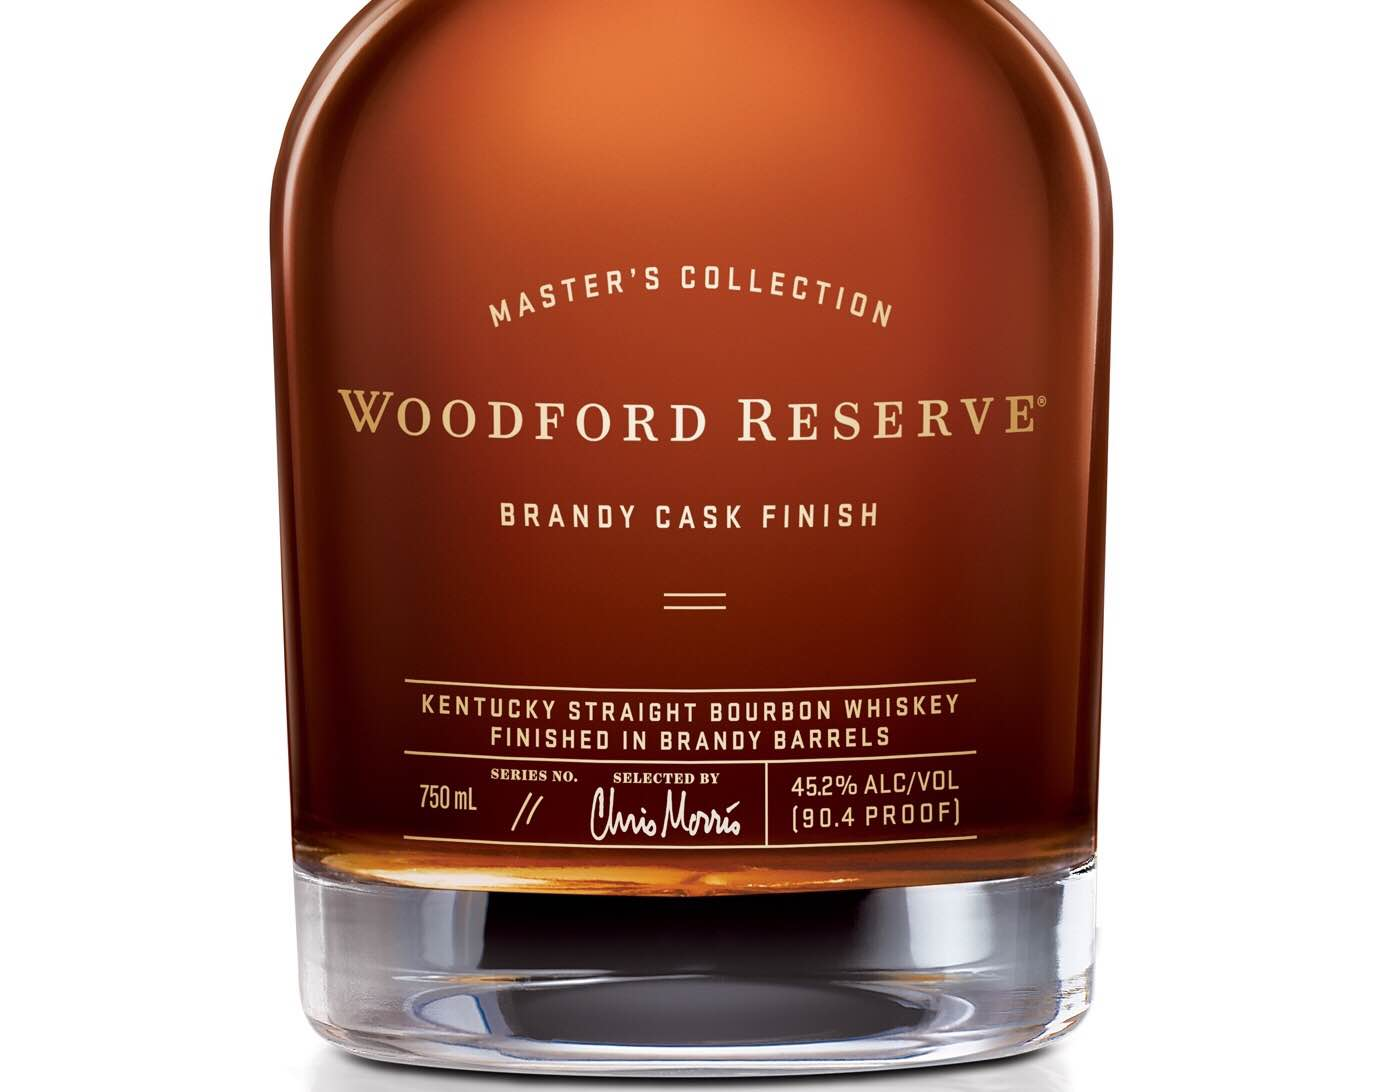 Woodford Releases 2016 Master's Collection - The Bourbon Review